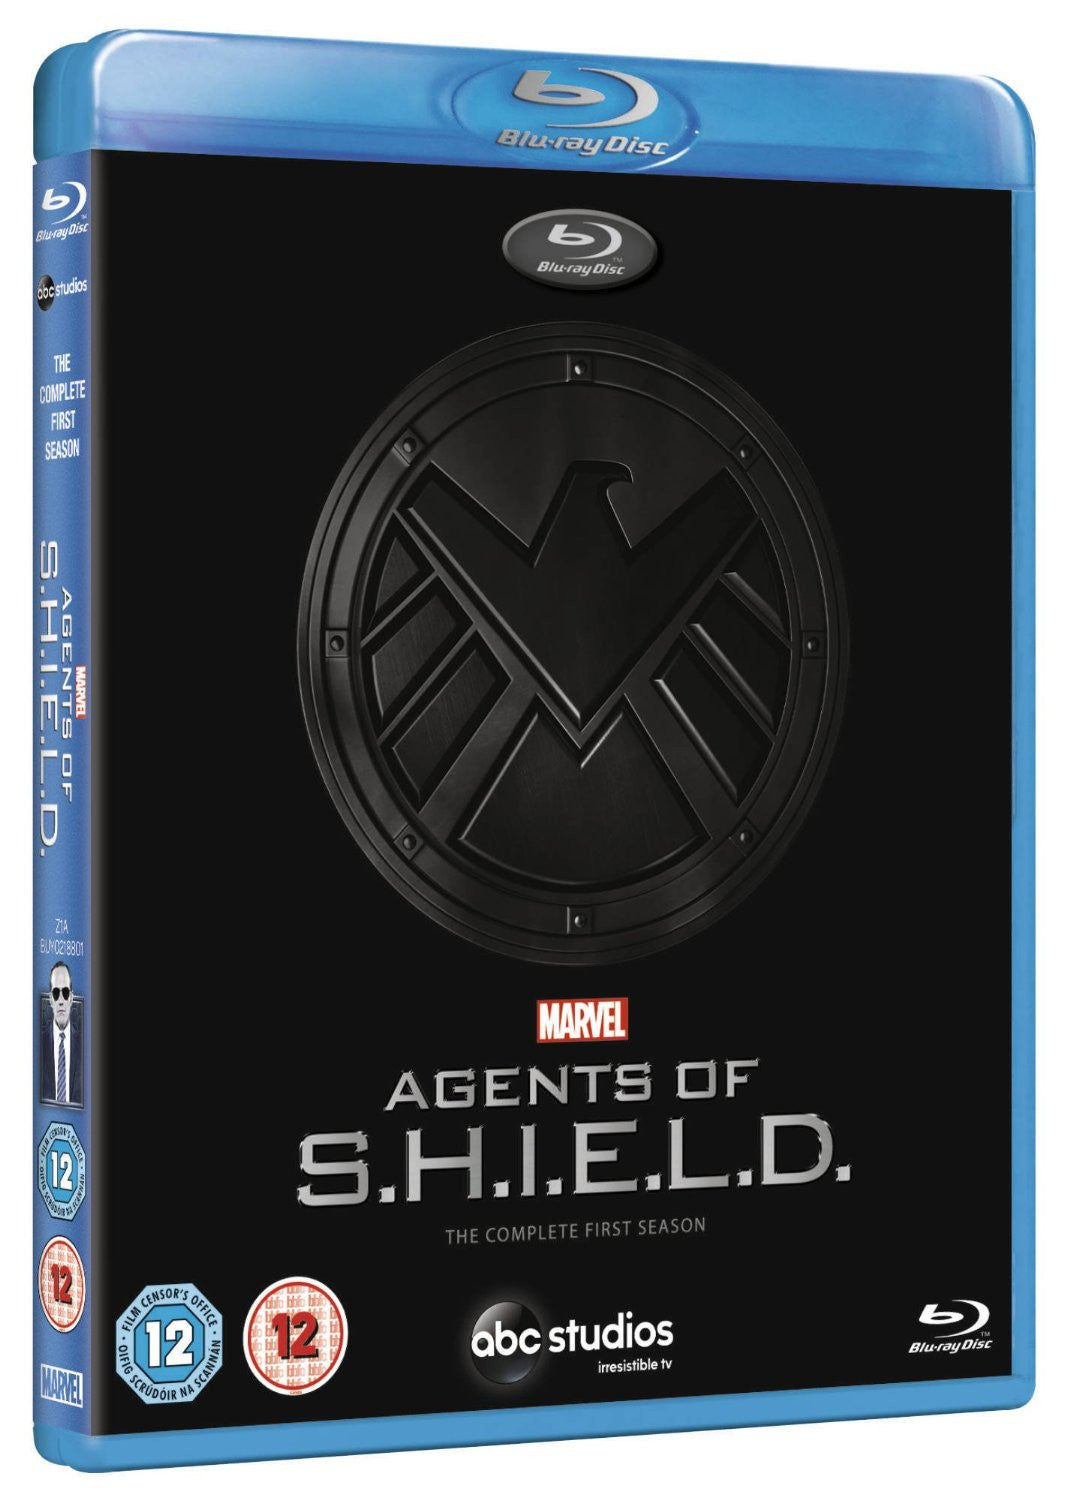 Marvel Shop - The latest Dvds and Blu Ray Australia | The